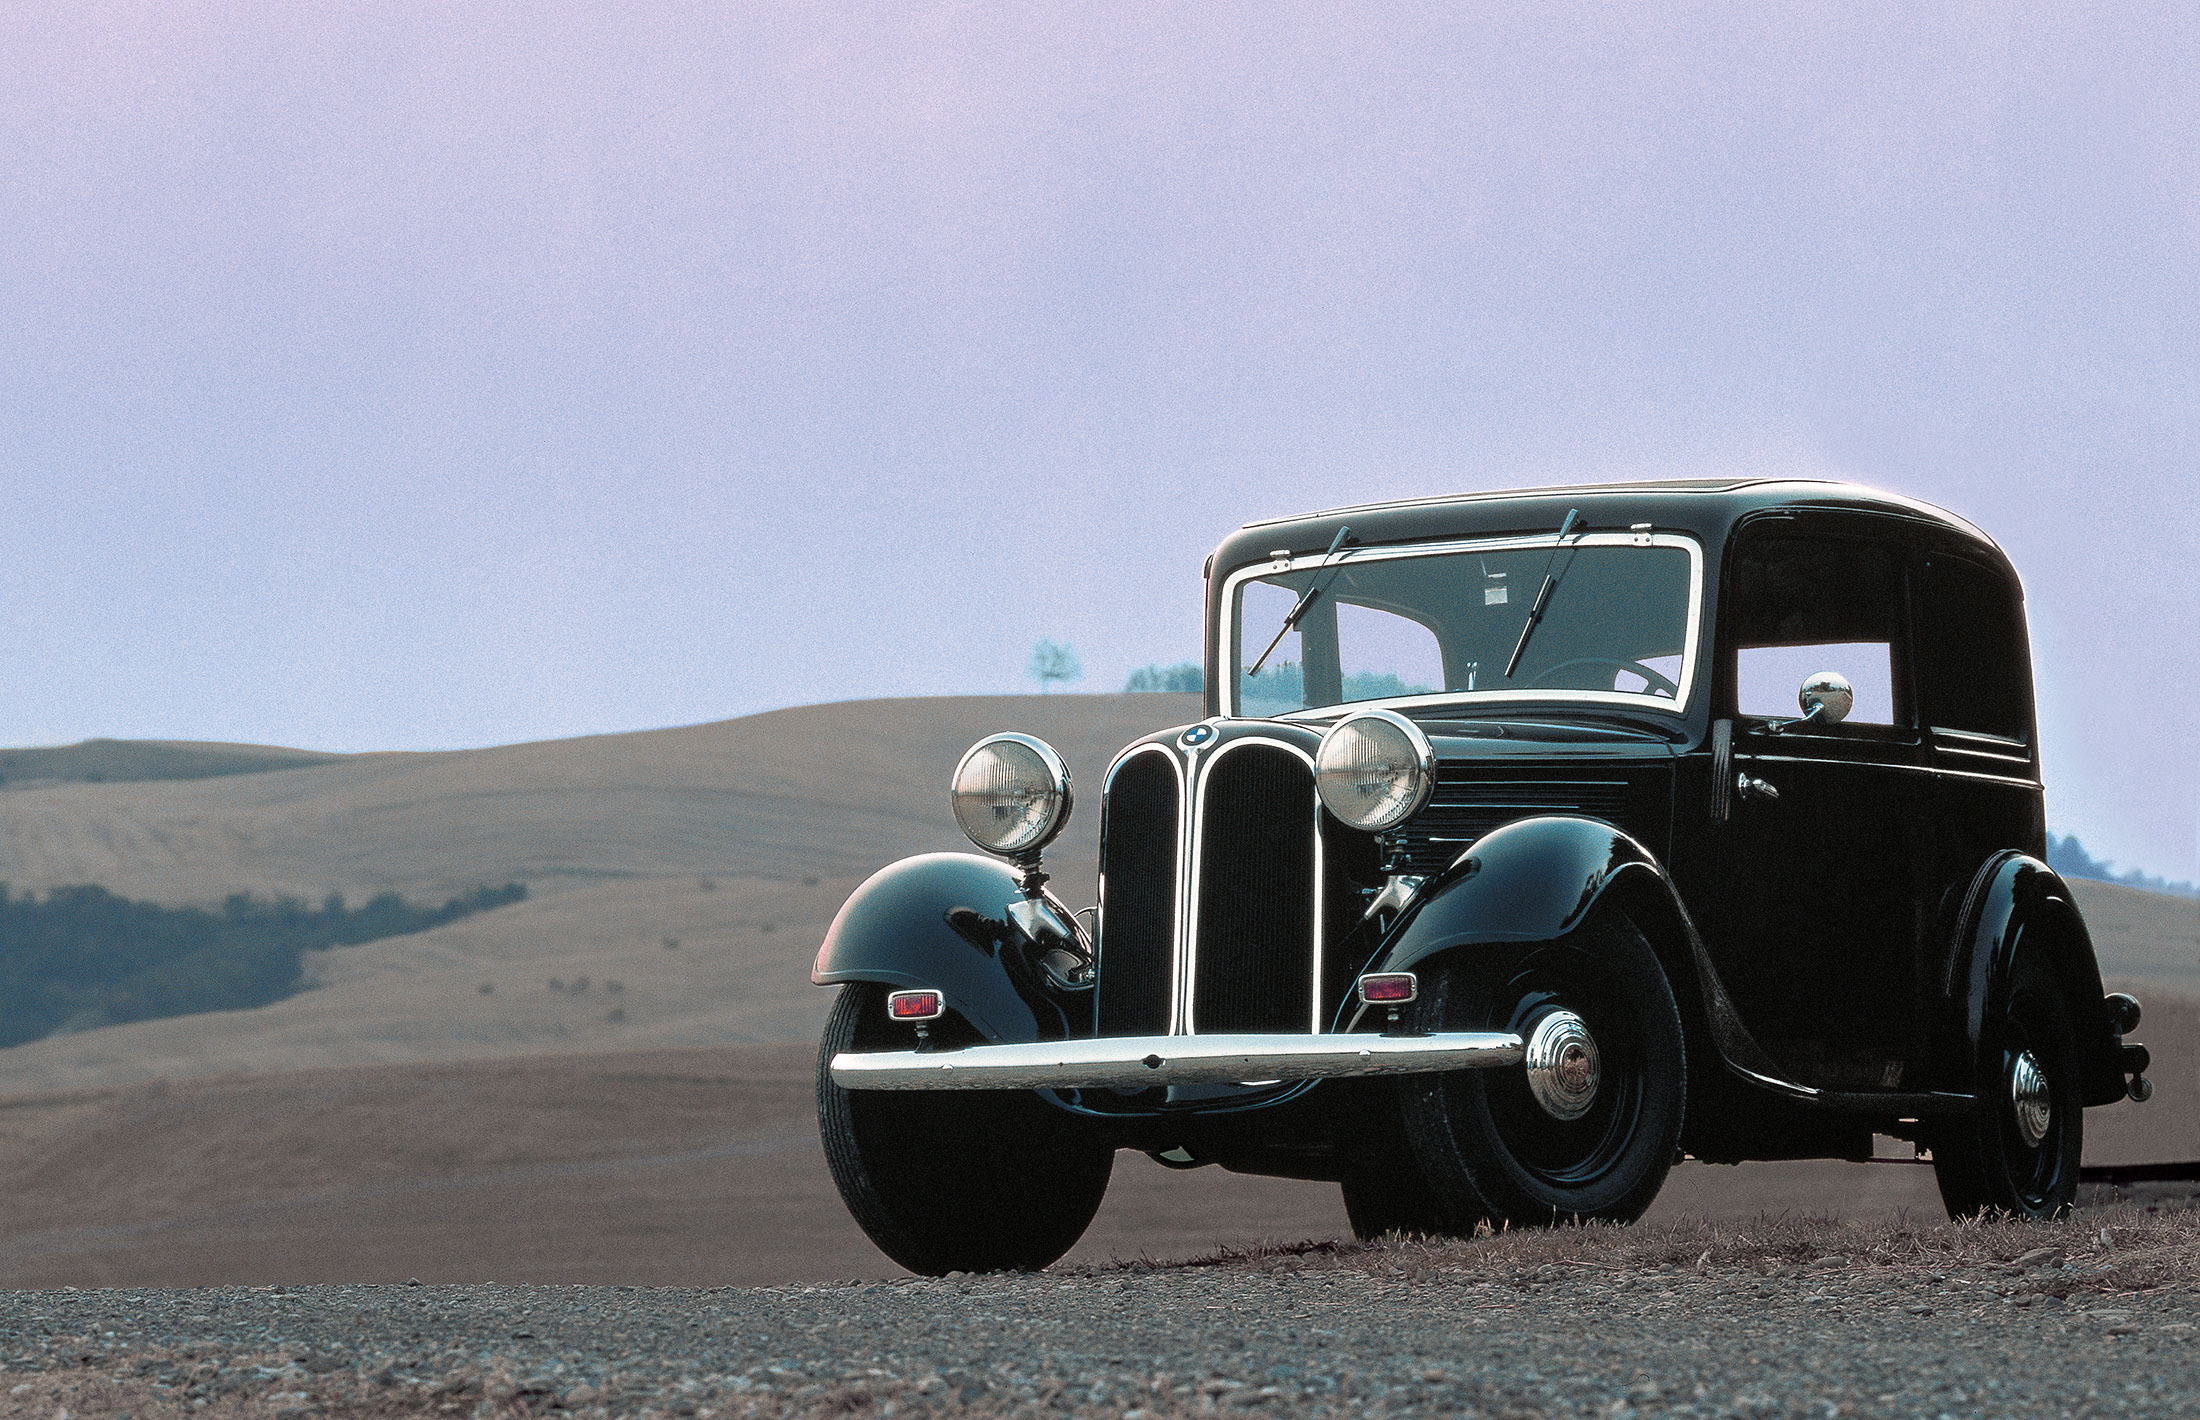 The BMW 303